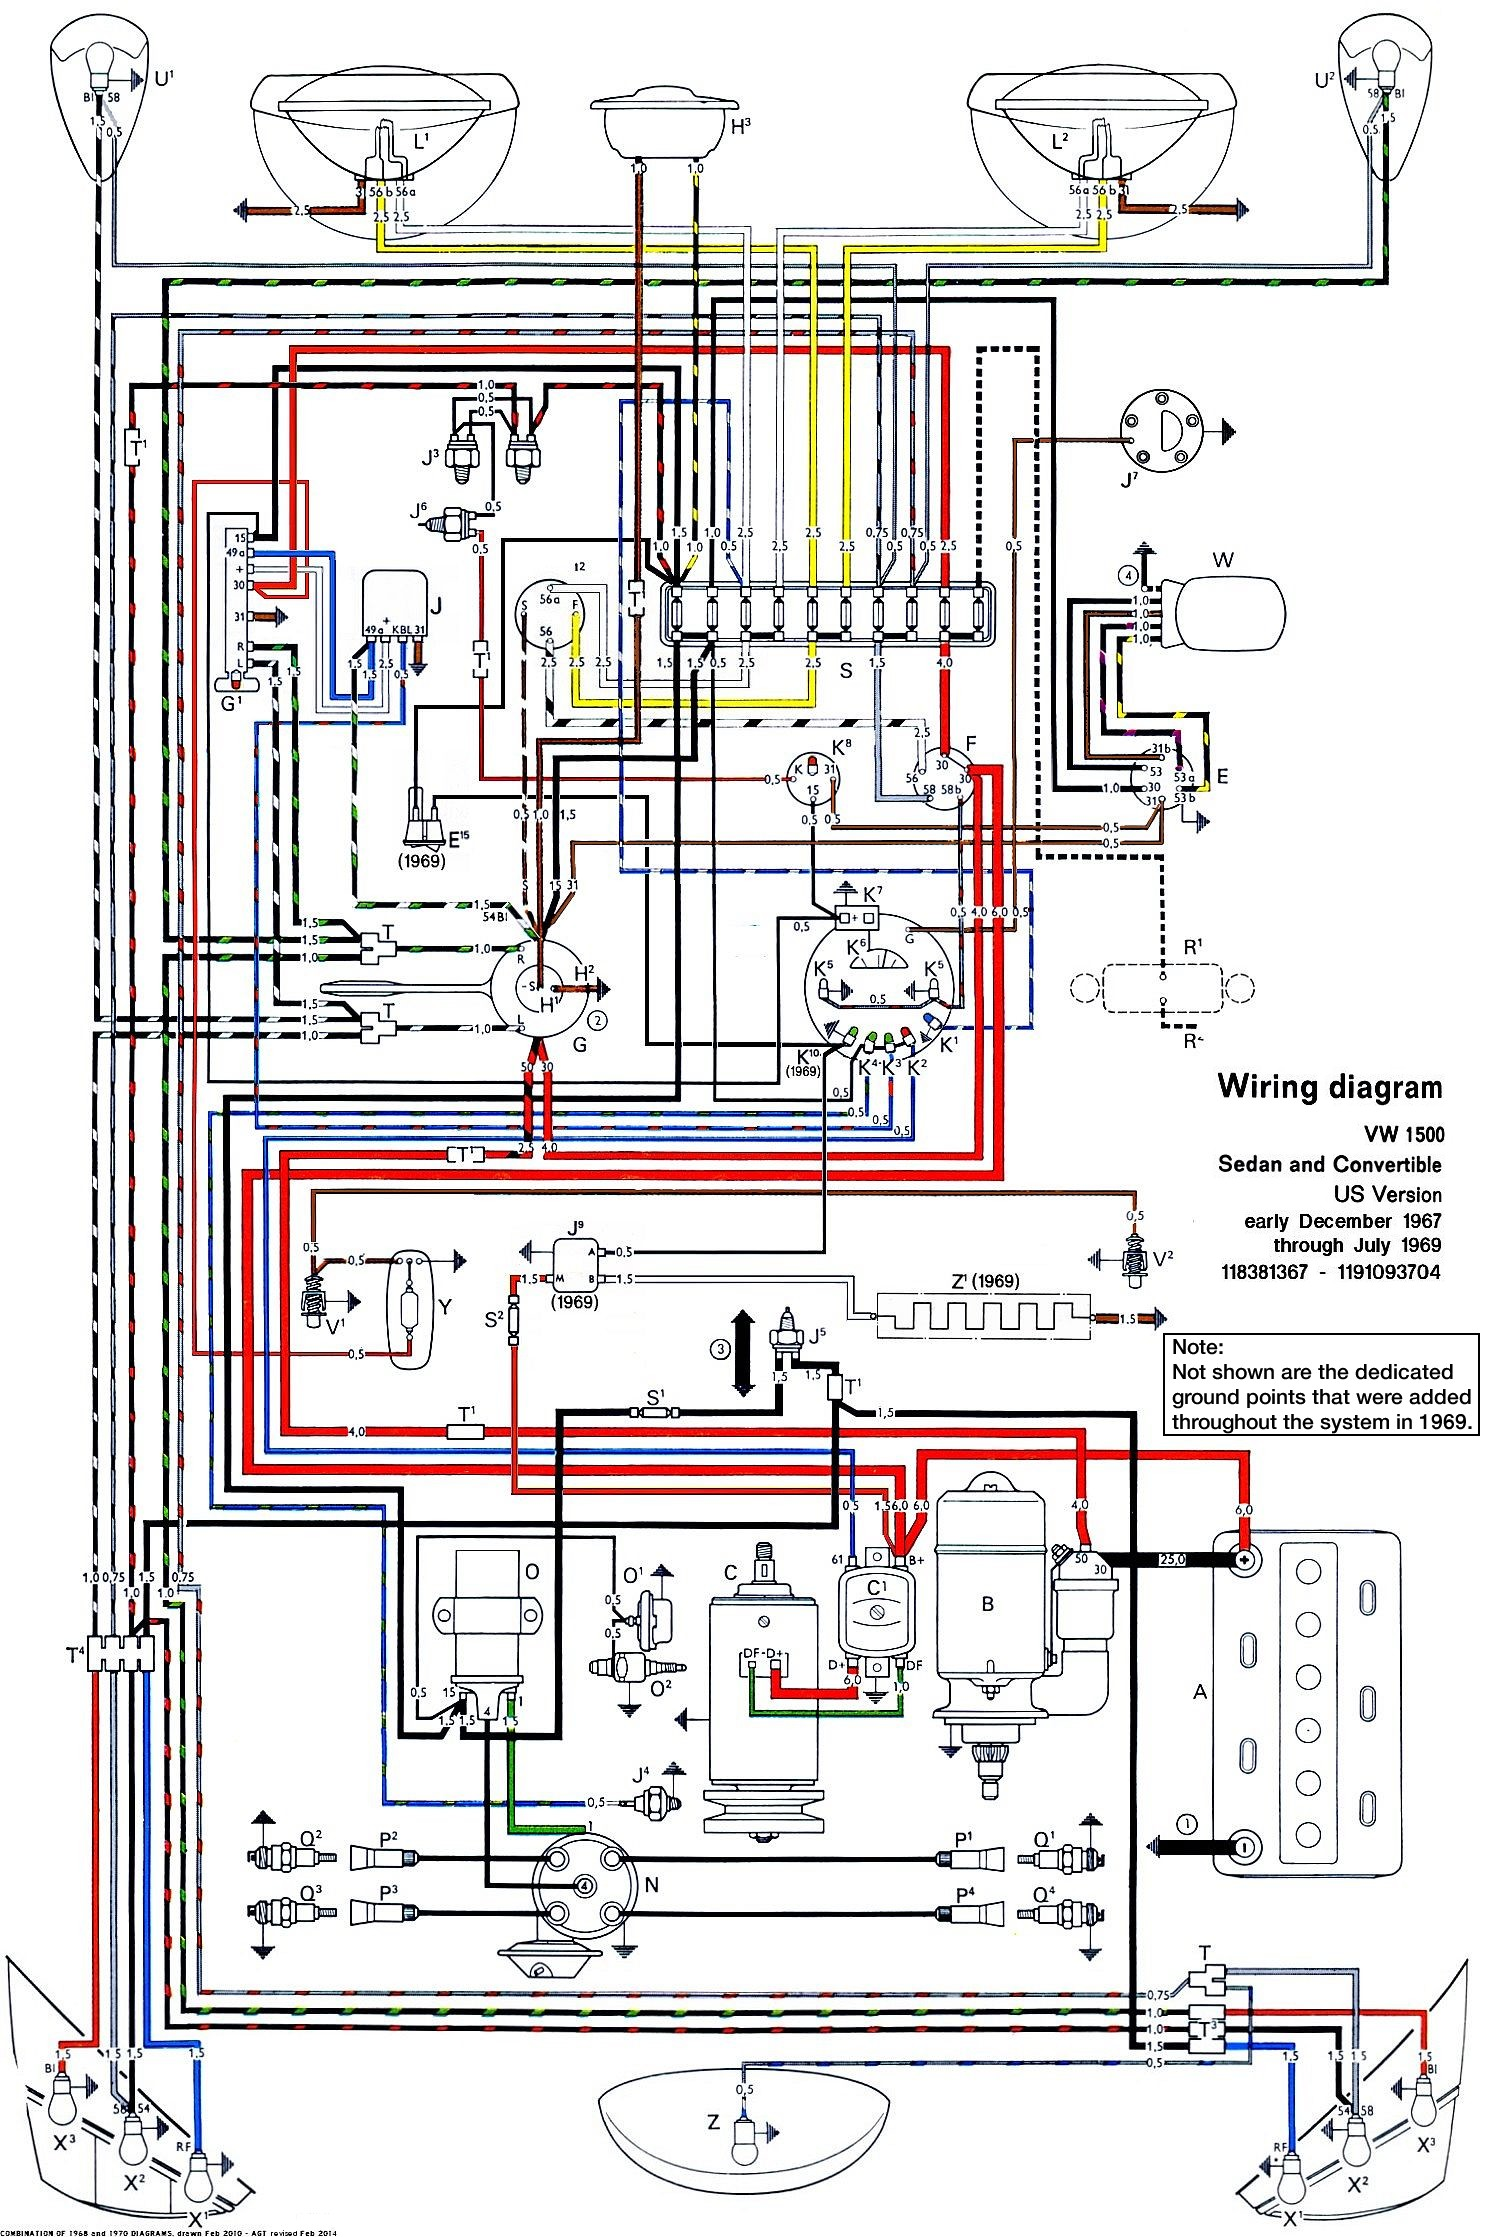 hight resolution of wiring diagram for 72 vw beetle wwwthesambacom vw forum http wwwthesambacom vw archives info wiring bughowtoread73upjpg